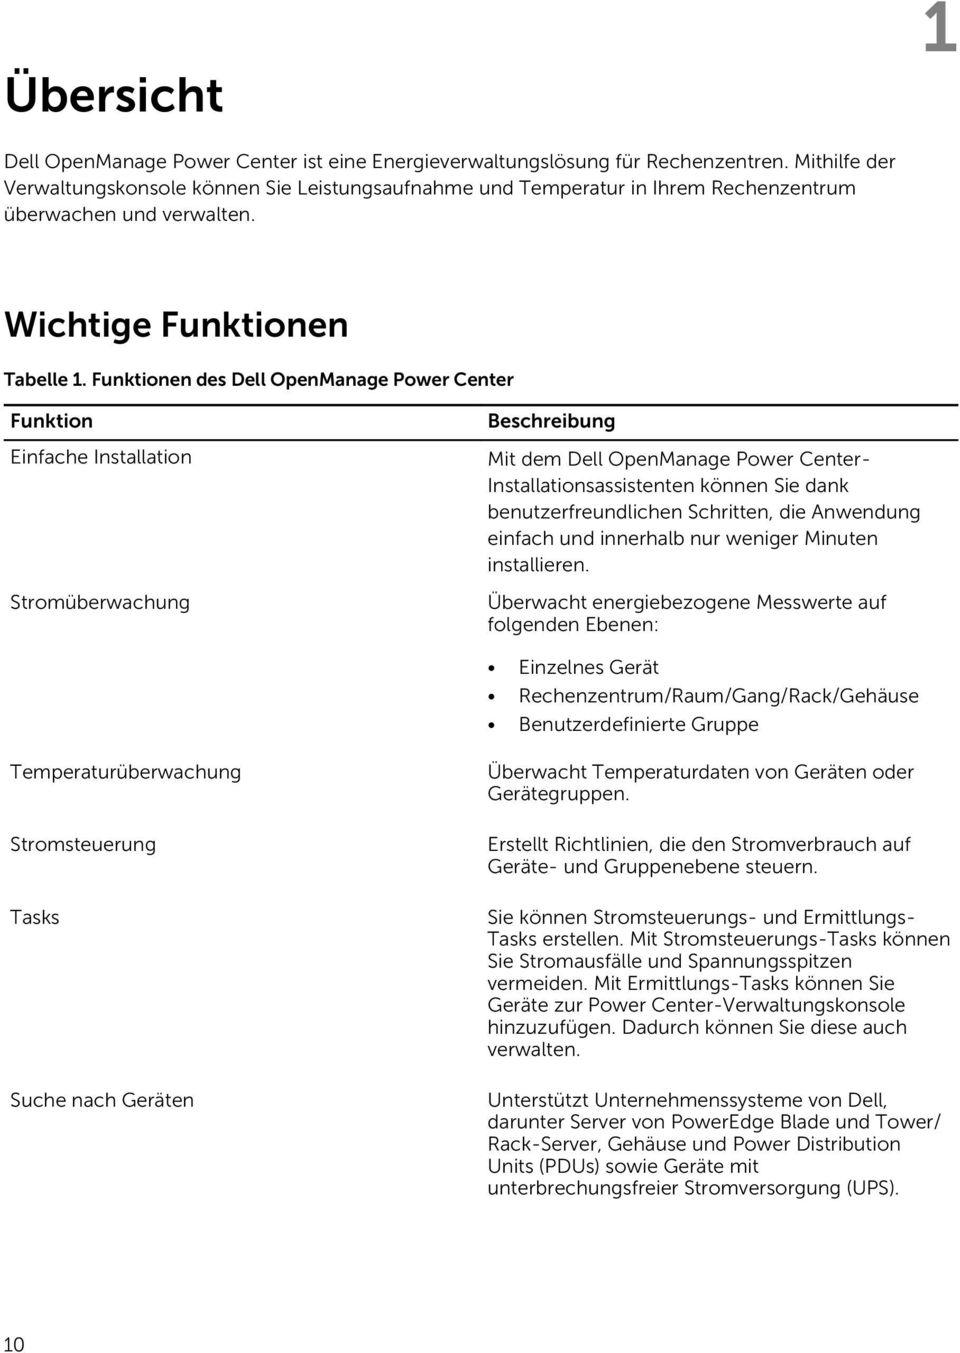 Funktionen des Dell OpenManage Power Center Funktion Einfache Installation Stromüberwachung Beschreibung Mit dem Dell OpenManage Power Center- Installationsassistenten können Sie dank